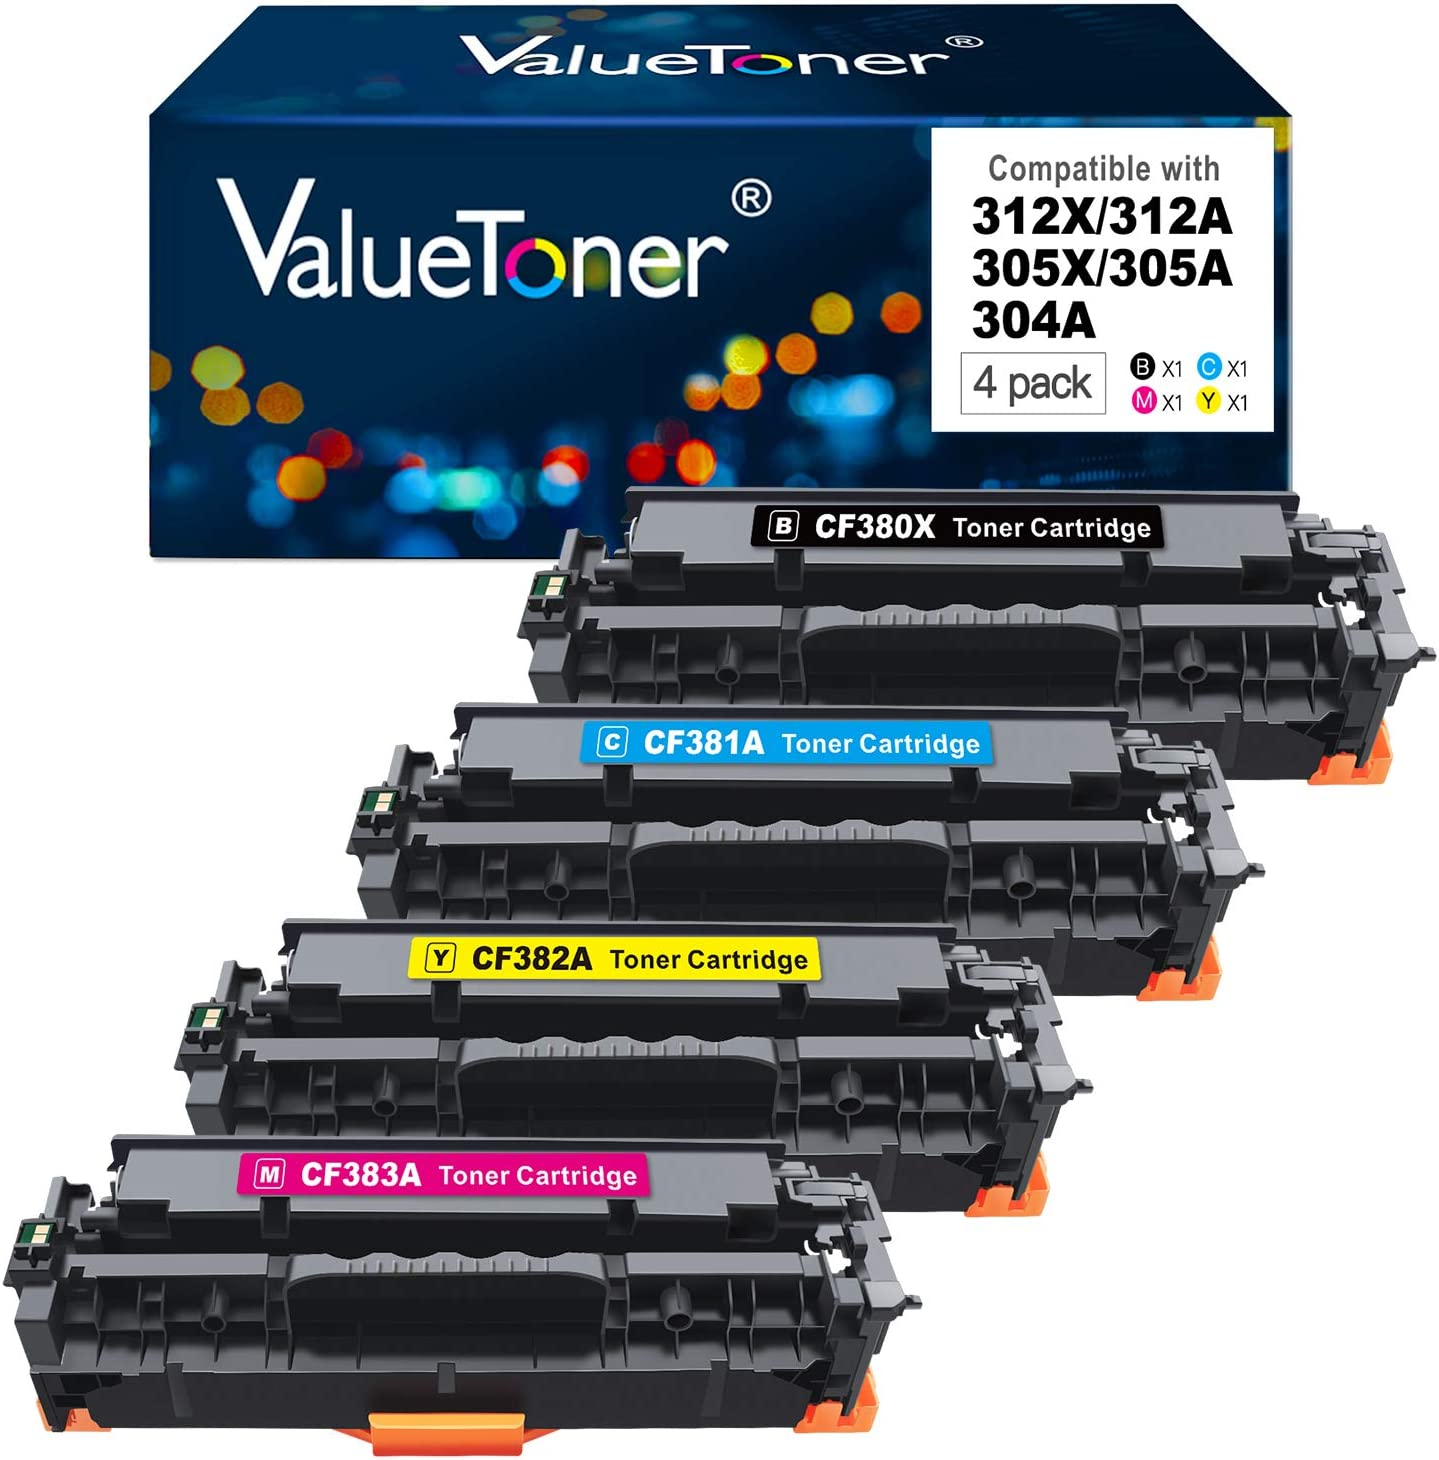 Valuetoner Remanufactured Toner Cartridge Replacement for HP 312X 312A 305A 305X for Laserjet Pro 400 Color M451dn M451dw M451nw M475dn M475dw MFP M476nw M476dn M476dw (Black,Cyan,Magenta,Yellow)